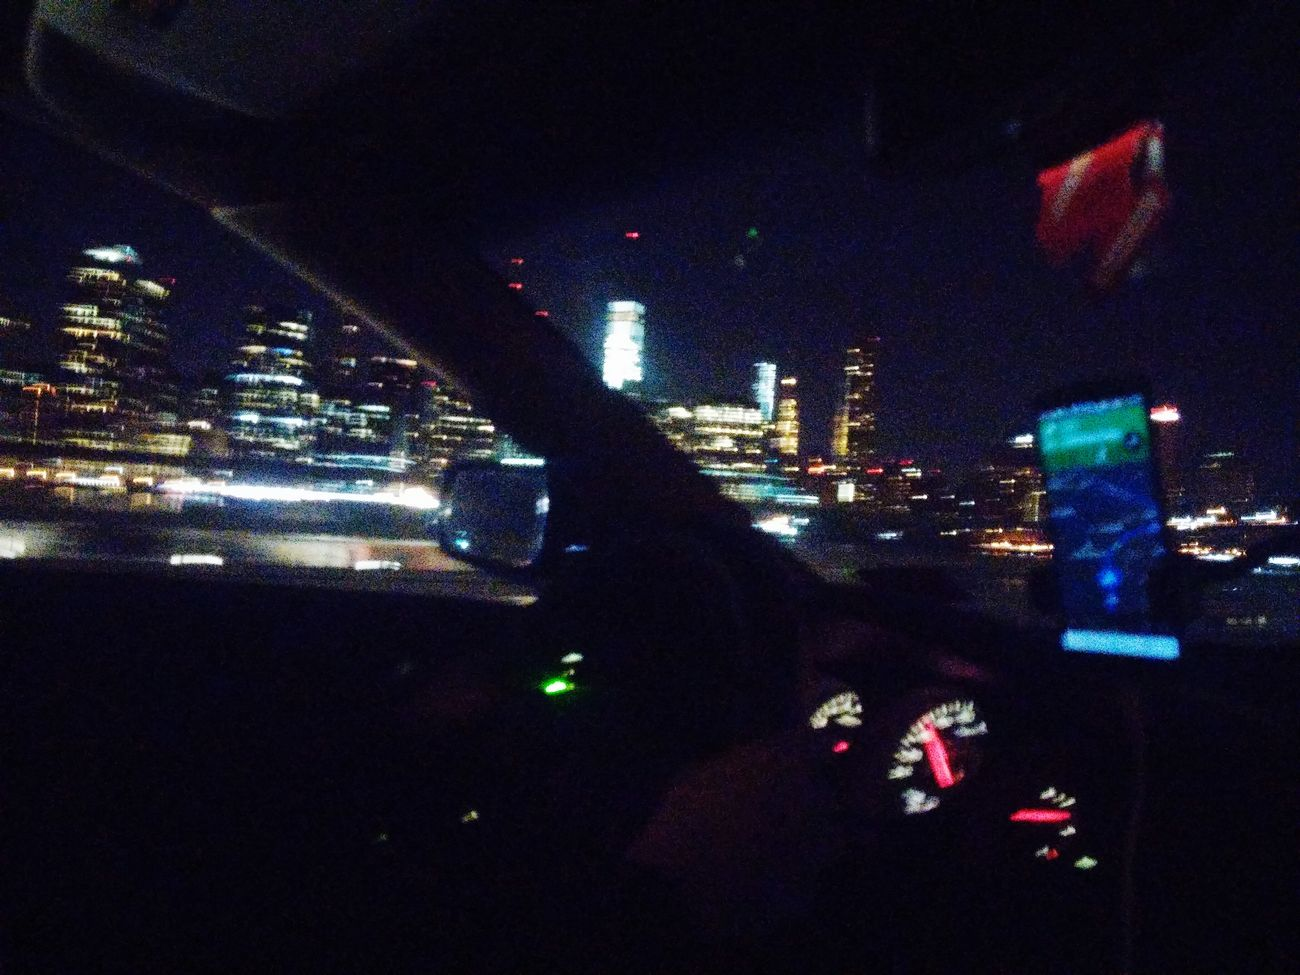 City Life City Lights City View  City Skyline Newyork New York City Driving New York Skyline  Cityscapes Night View